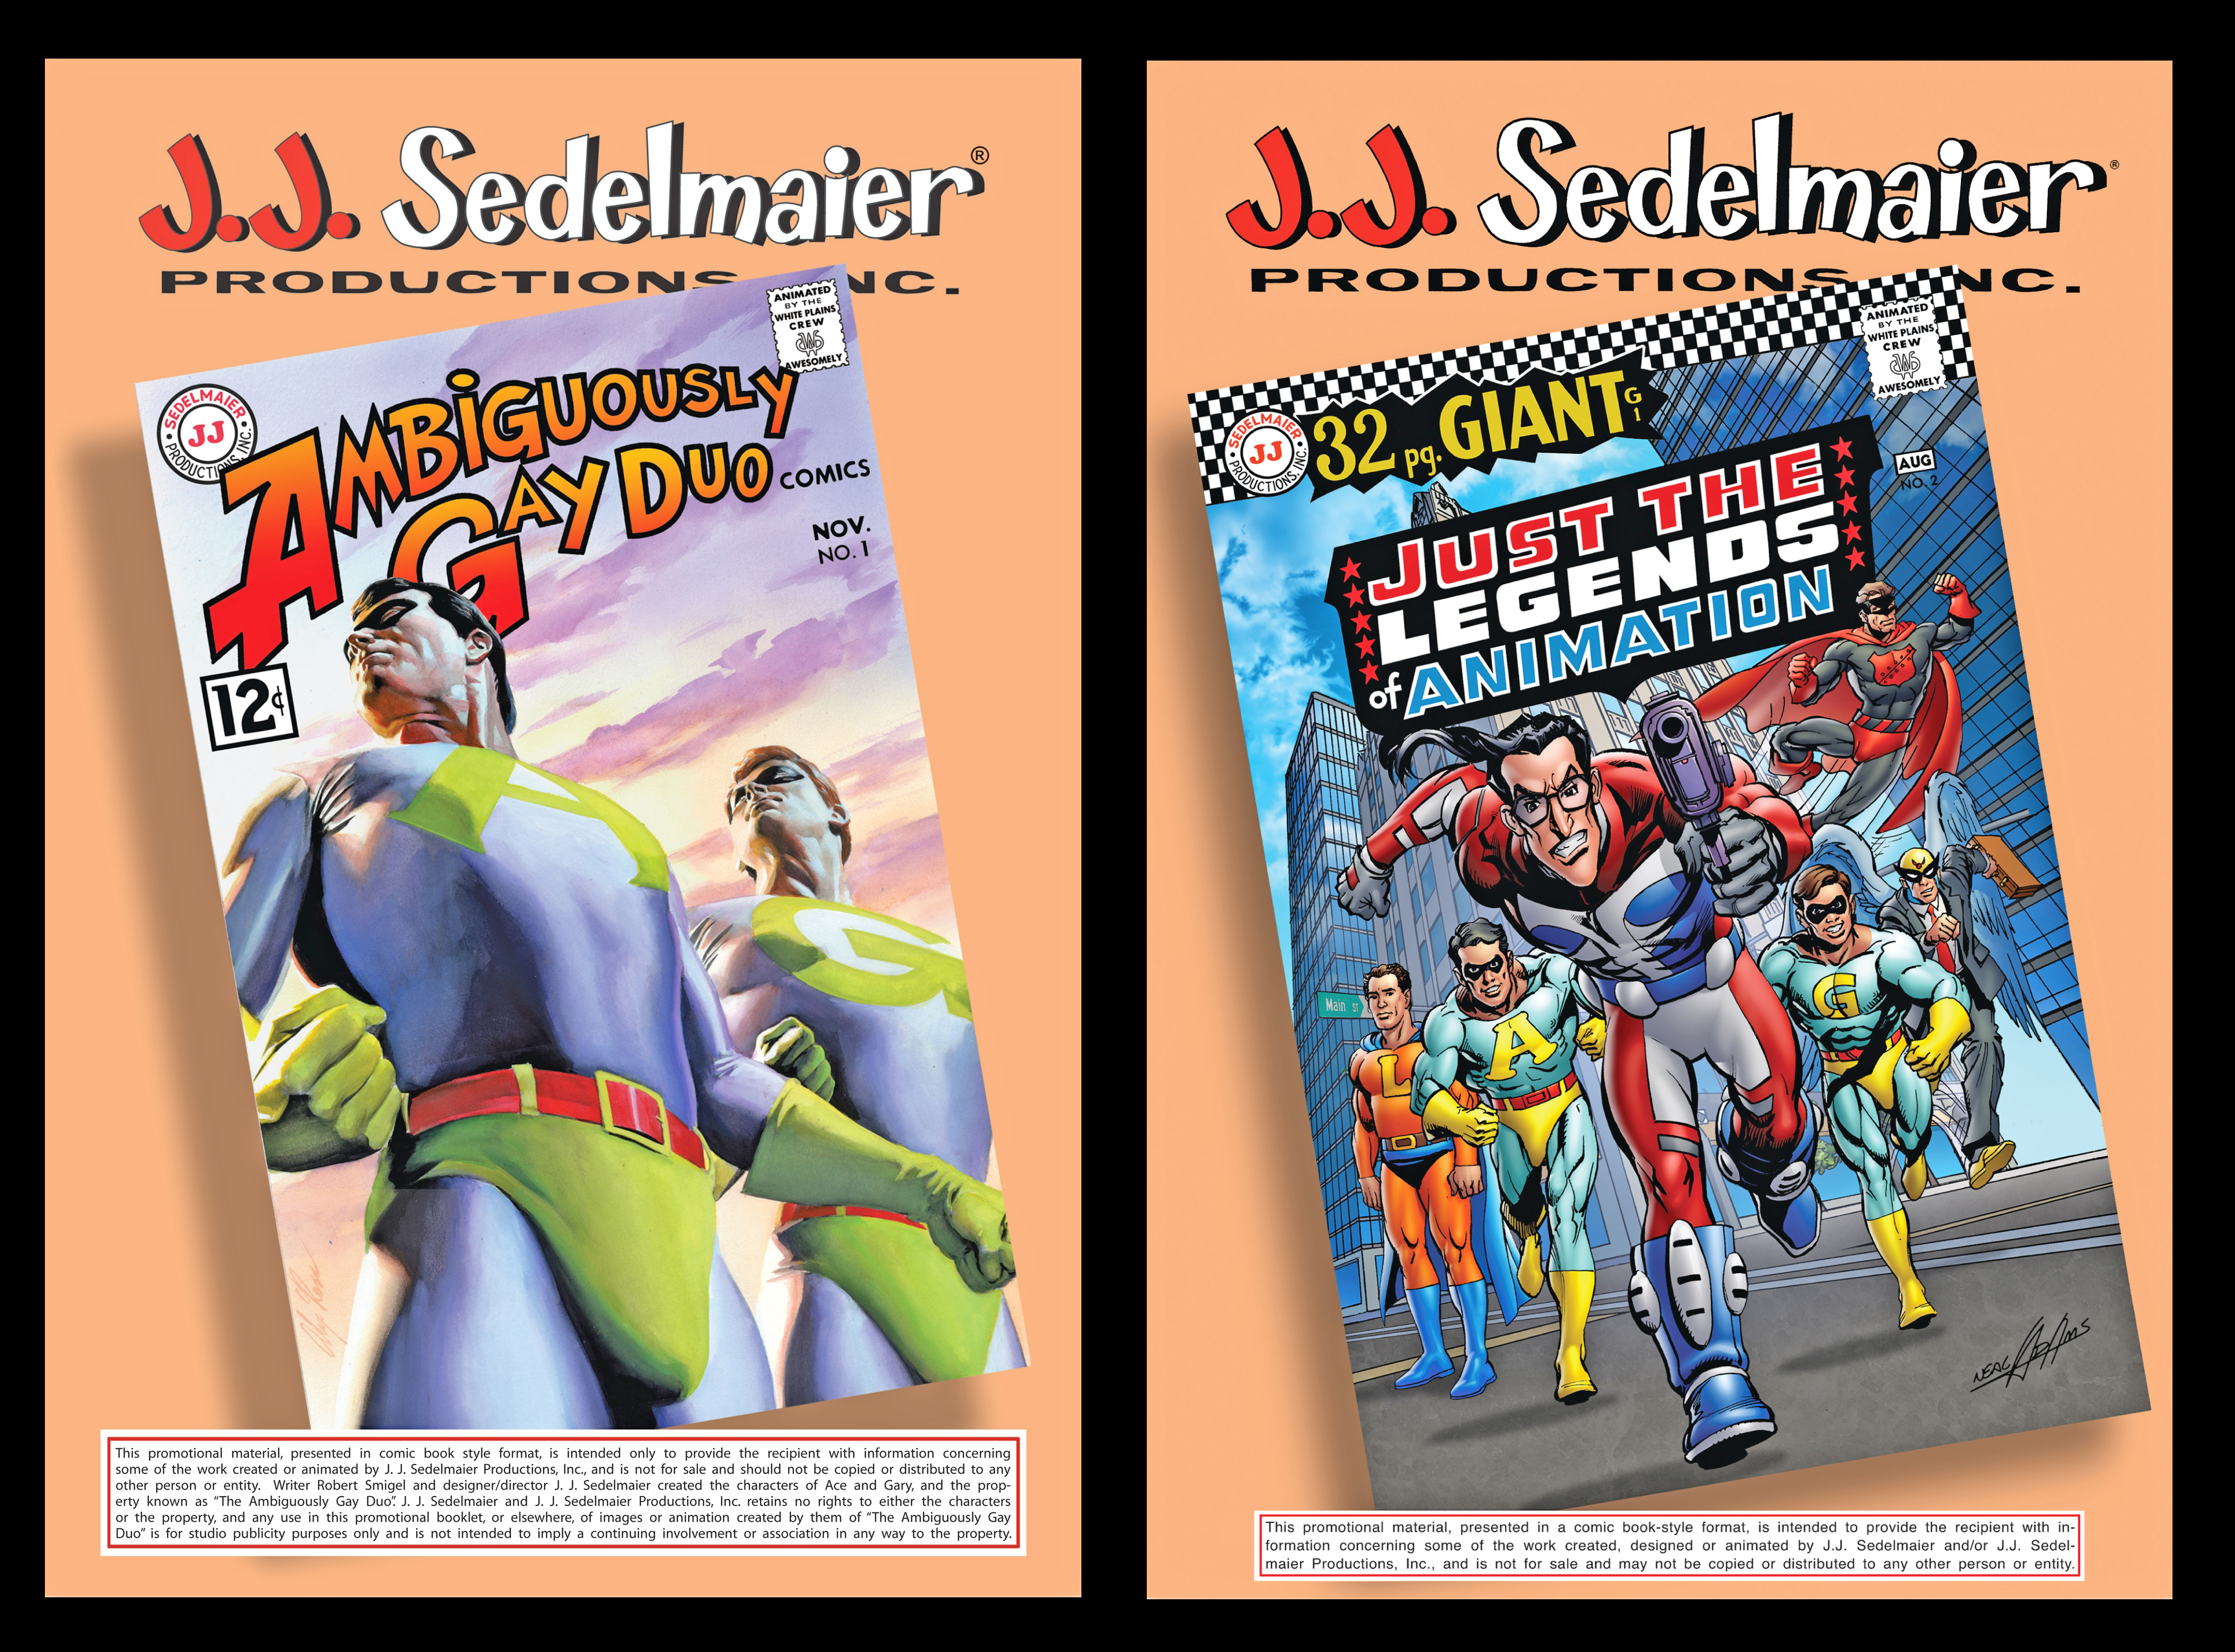 Issues #1 and #2 JJSP comics. Cover on left by Alex Ross, right by Neal Adams. Sedelmaier commissioned them both to illustrate Ace & Gary as well as his studio's full array of comicbook-type superheroes!